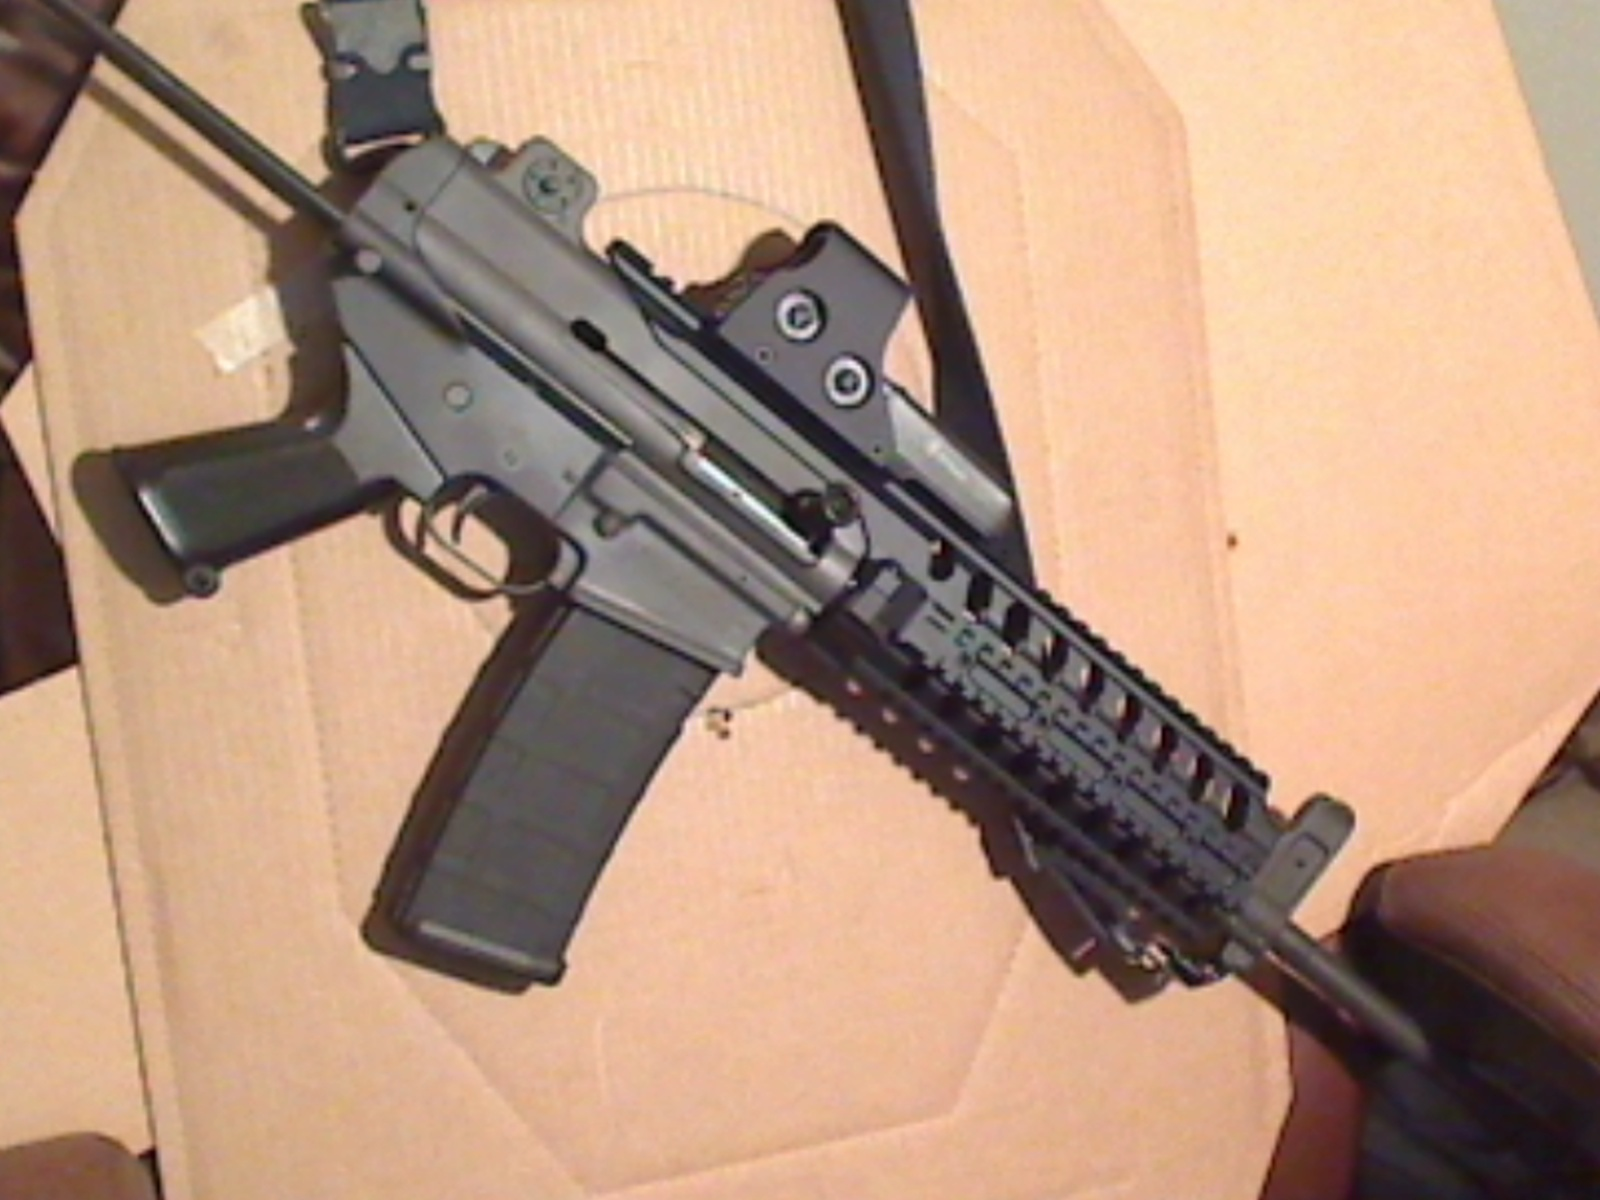 Daewoo K1A1, Max1 and AR110C owners check out my Rail system-picture-8.jpg